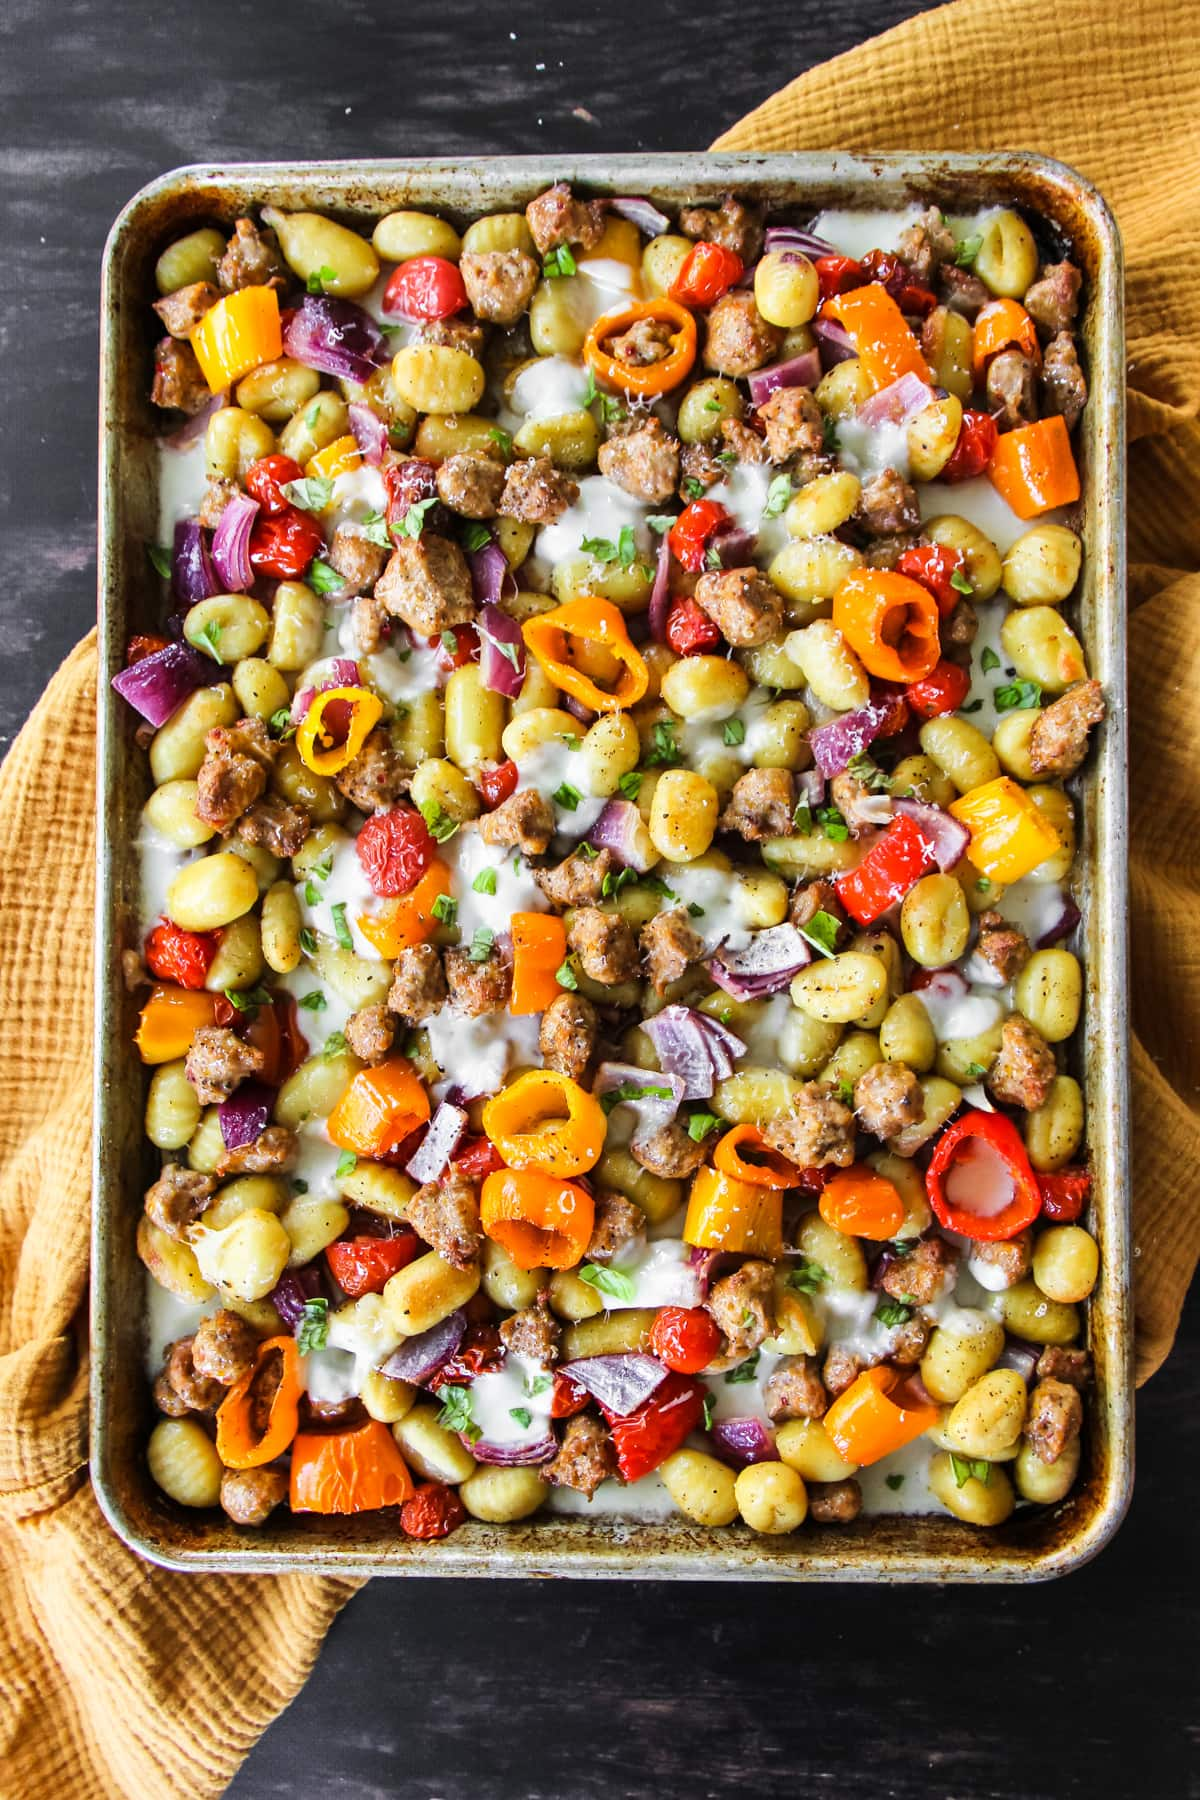 a top down view of a baking sheet filled with cooked crumbled sausage, sliced peppers, onions, tomatoes and cheese. the pan is sprinkled with parmesan cheese and fresh basil